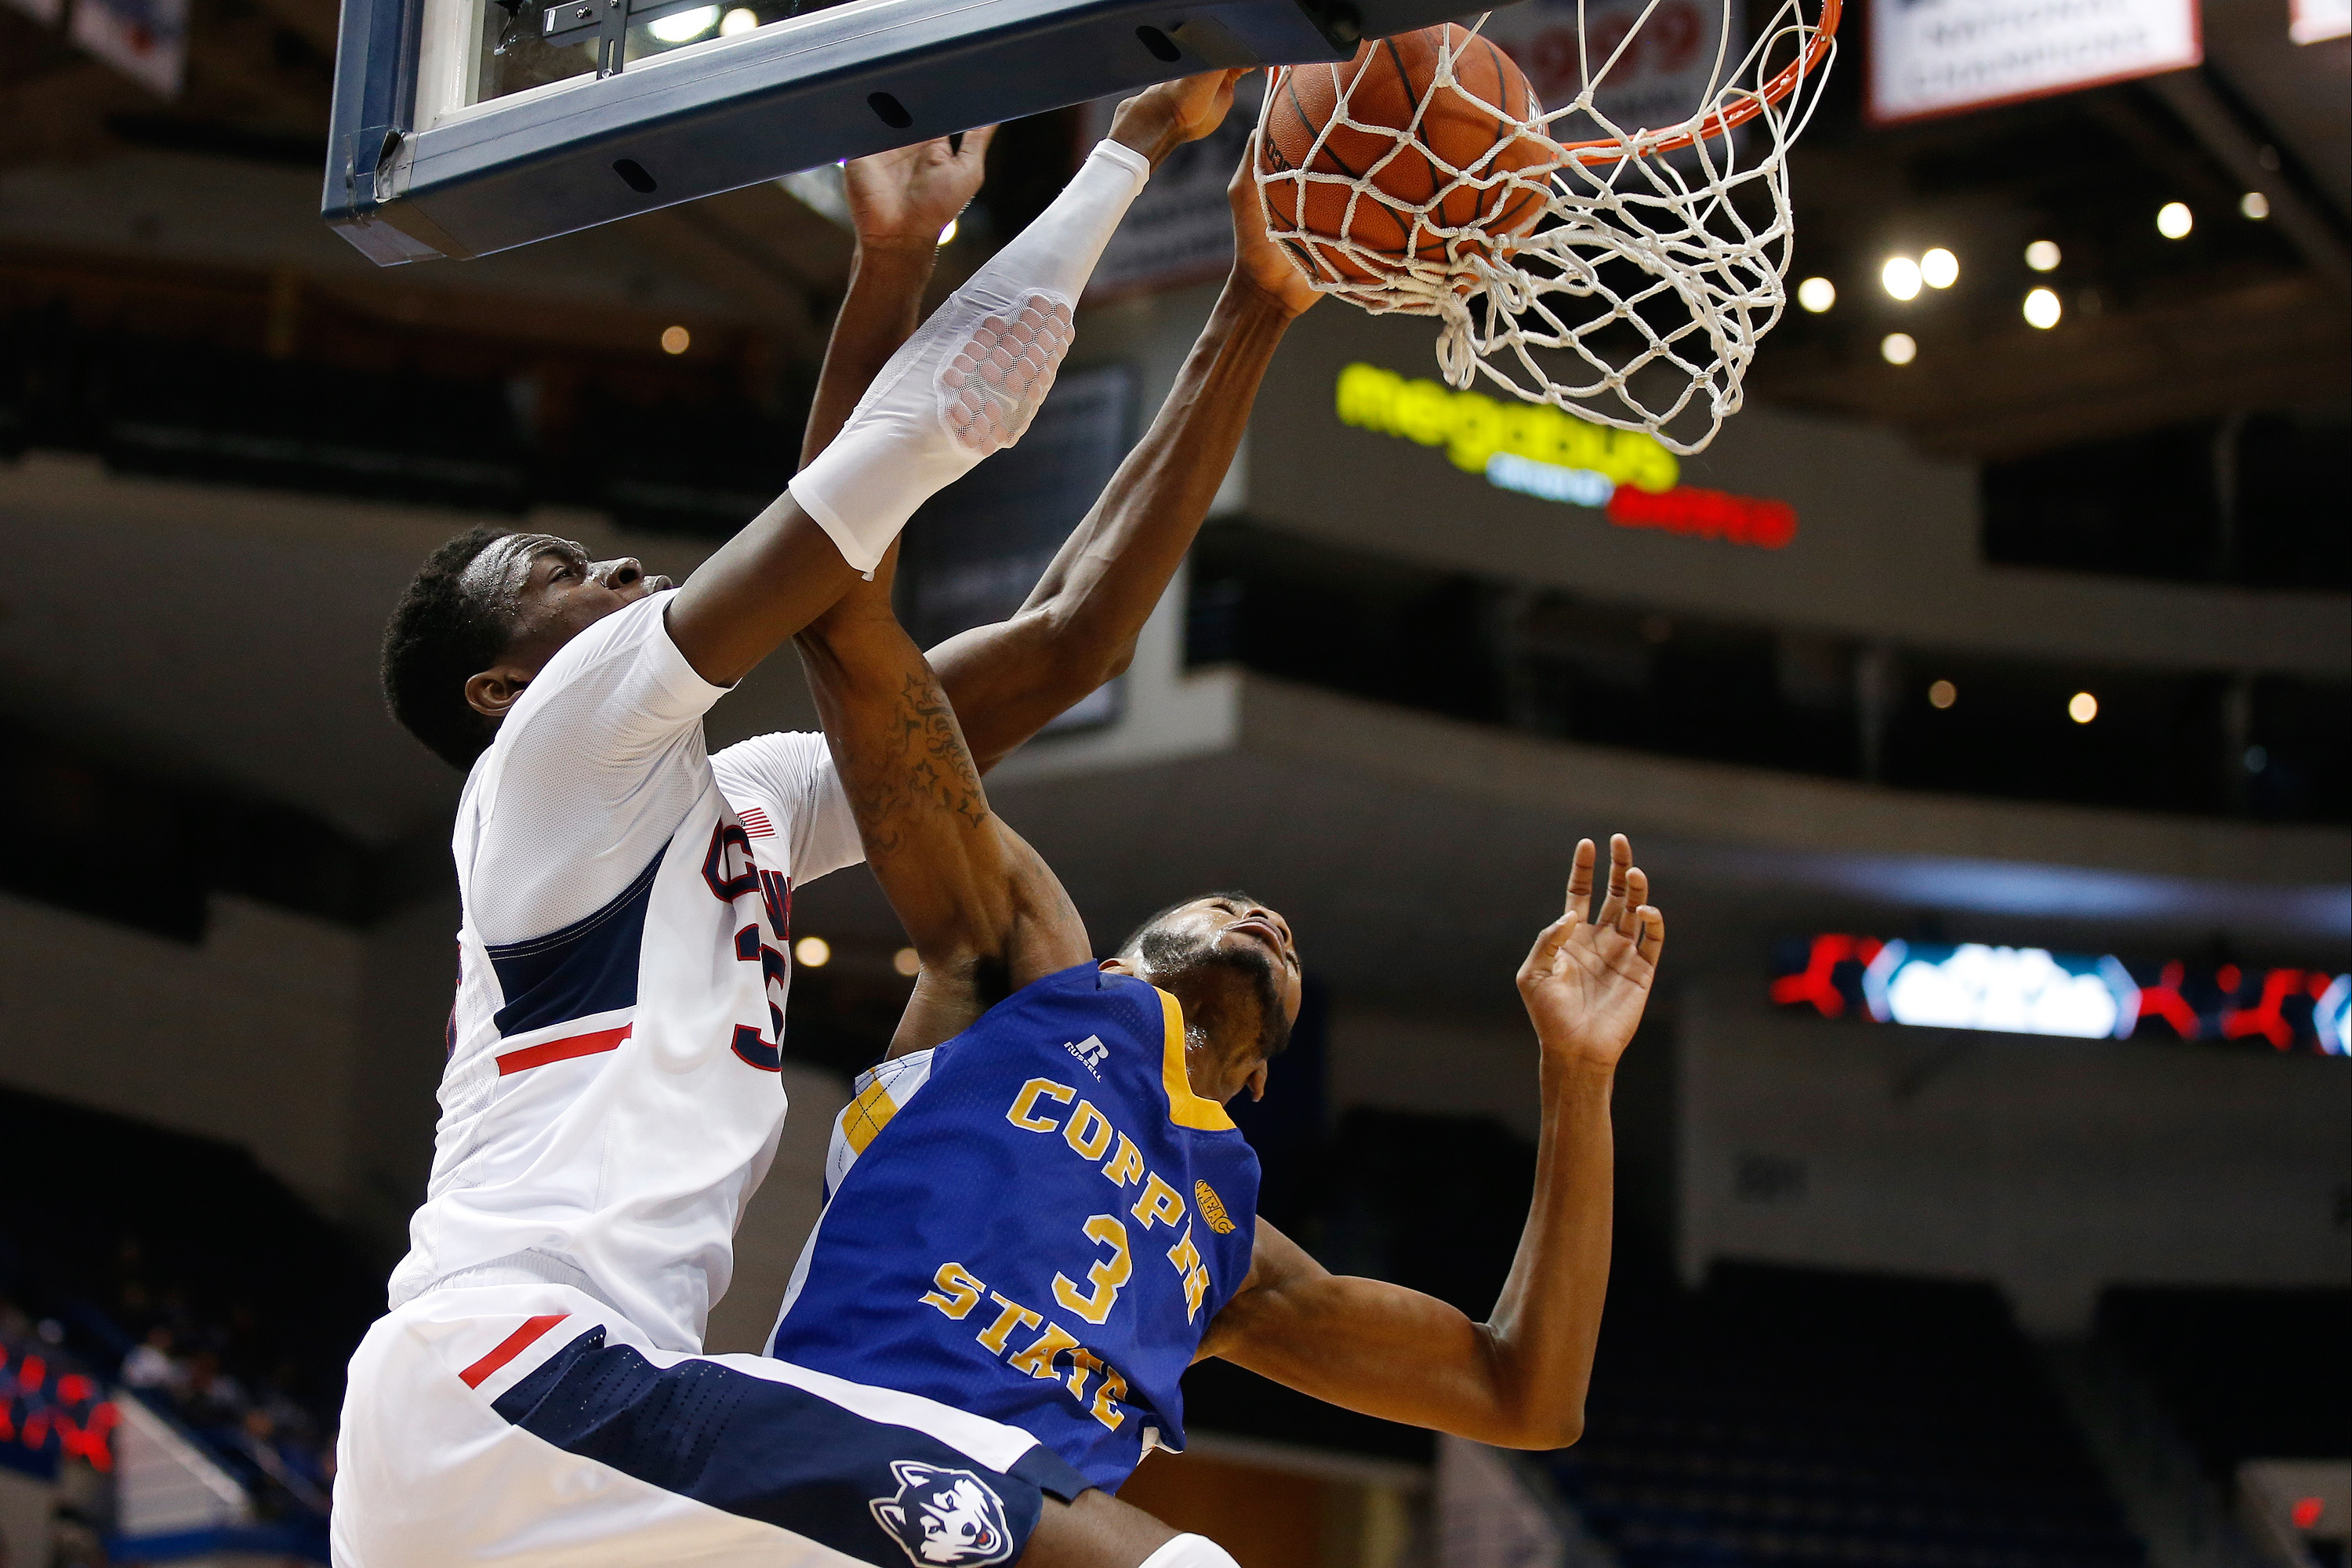 Connecticut Huskies center Amida Brimah dunks against Coppin State. (David Butler II-USA TODAY Sports)